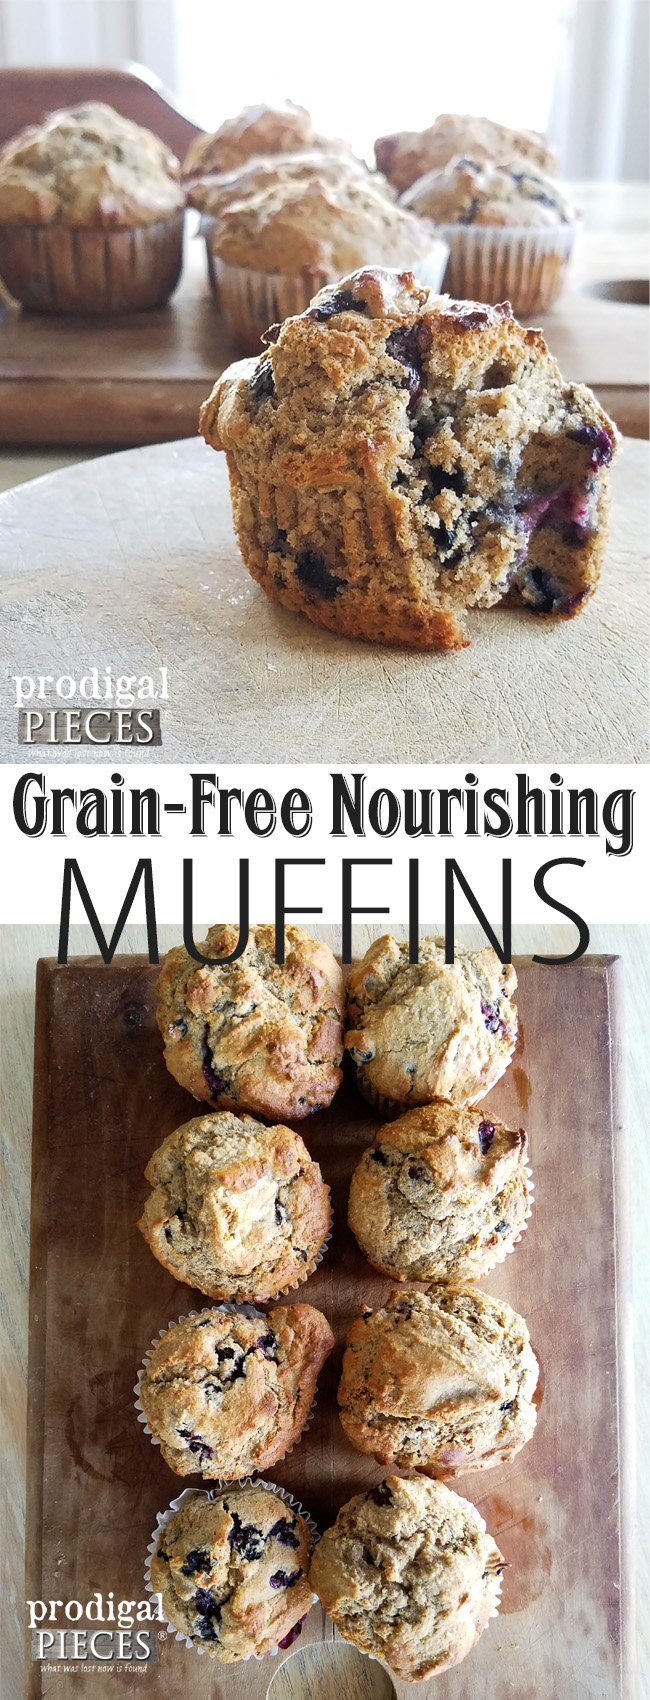 You can have your muffin and eat it too. Delicious grain-free muffin recipe from Prodigal Pieces | prodigalpieces.com